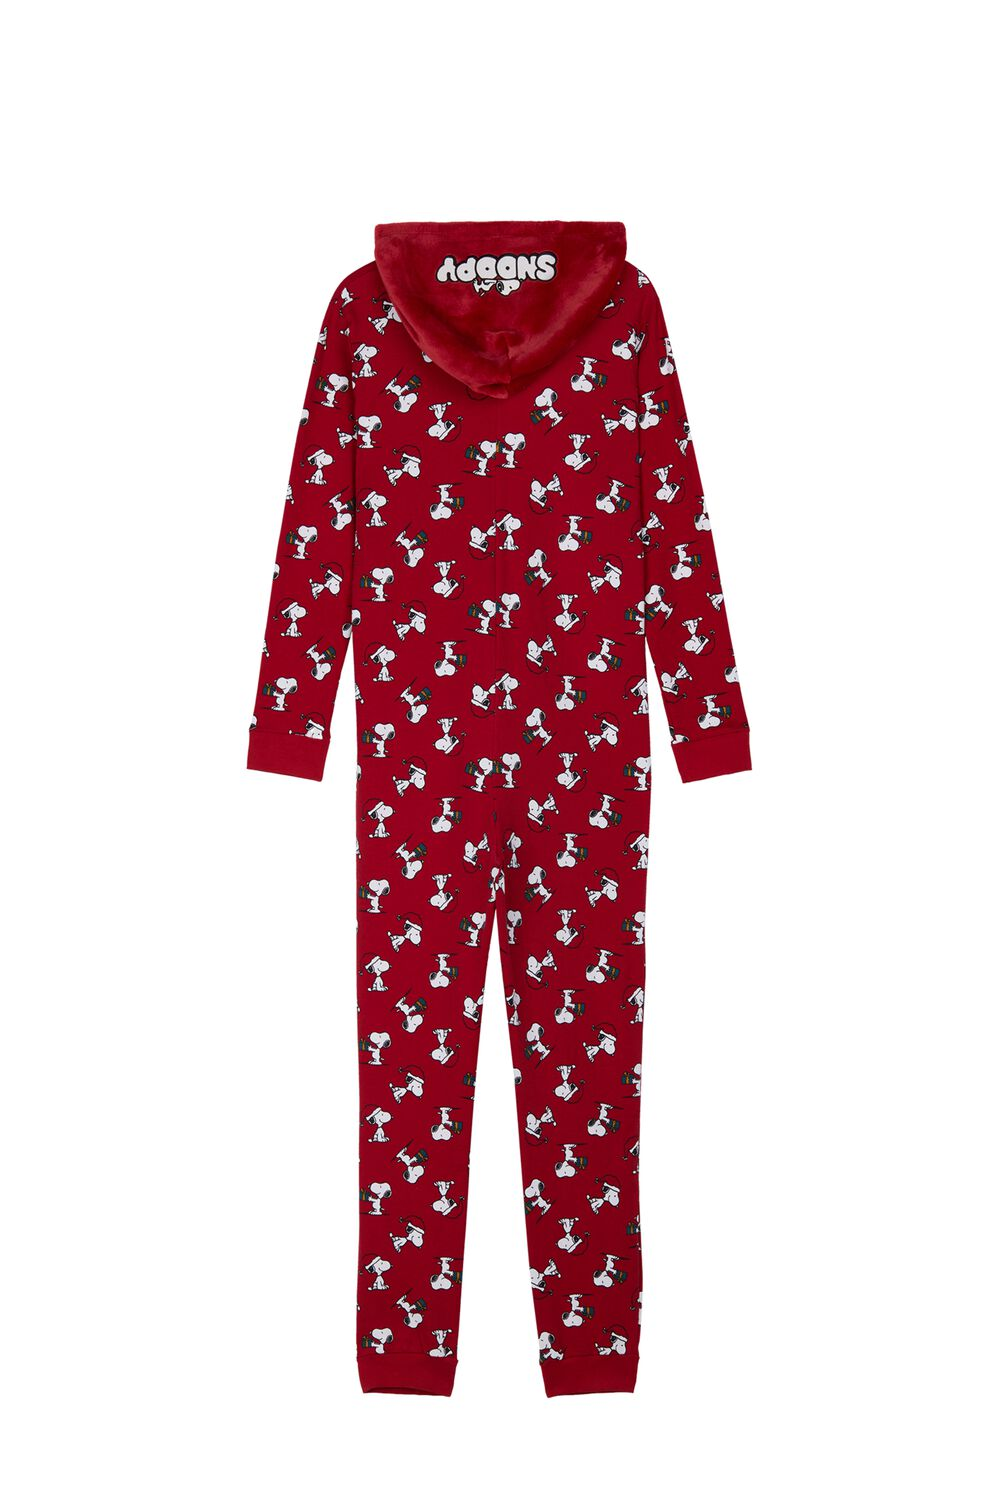 Men's Long Peanuts© Onesie